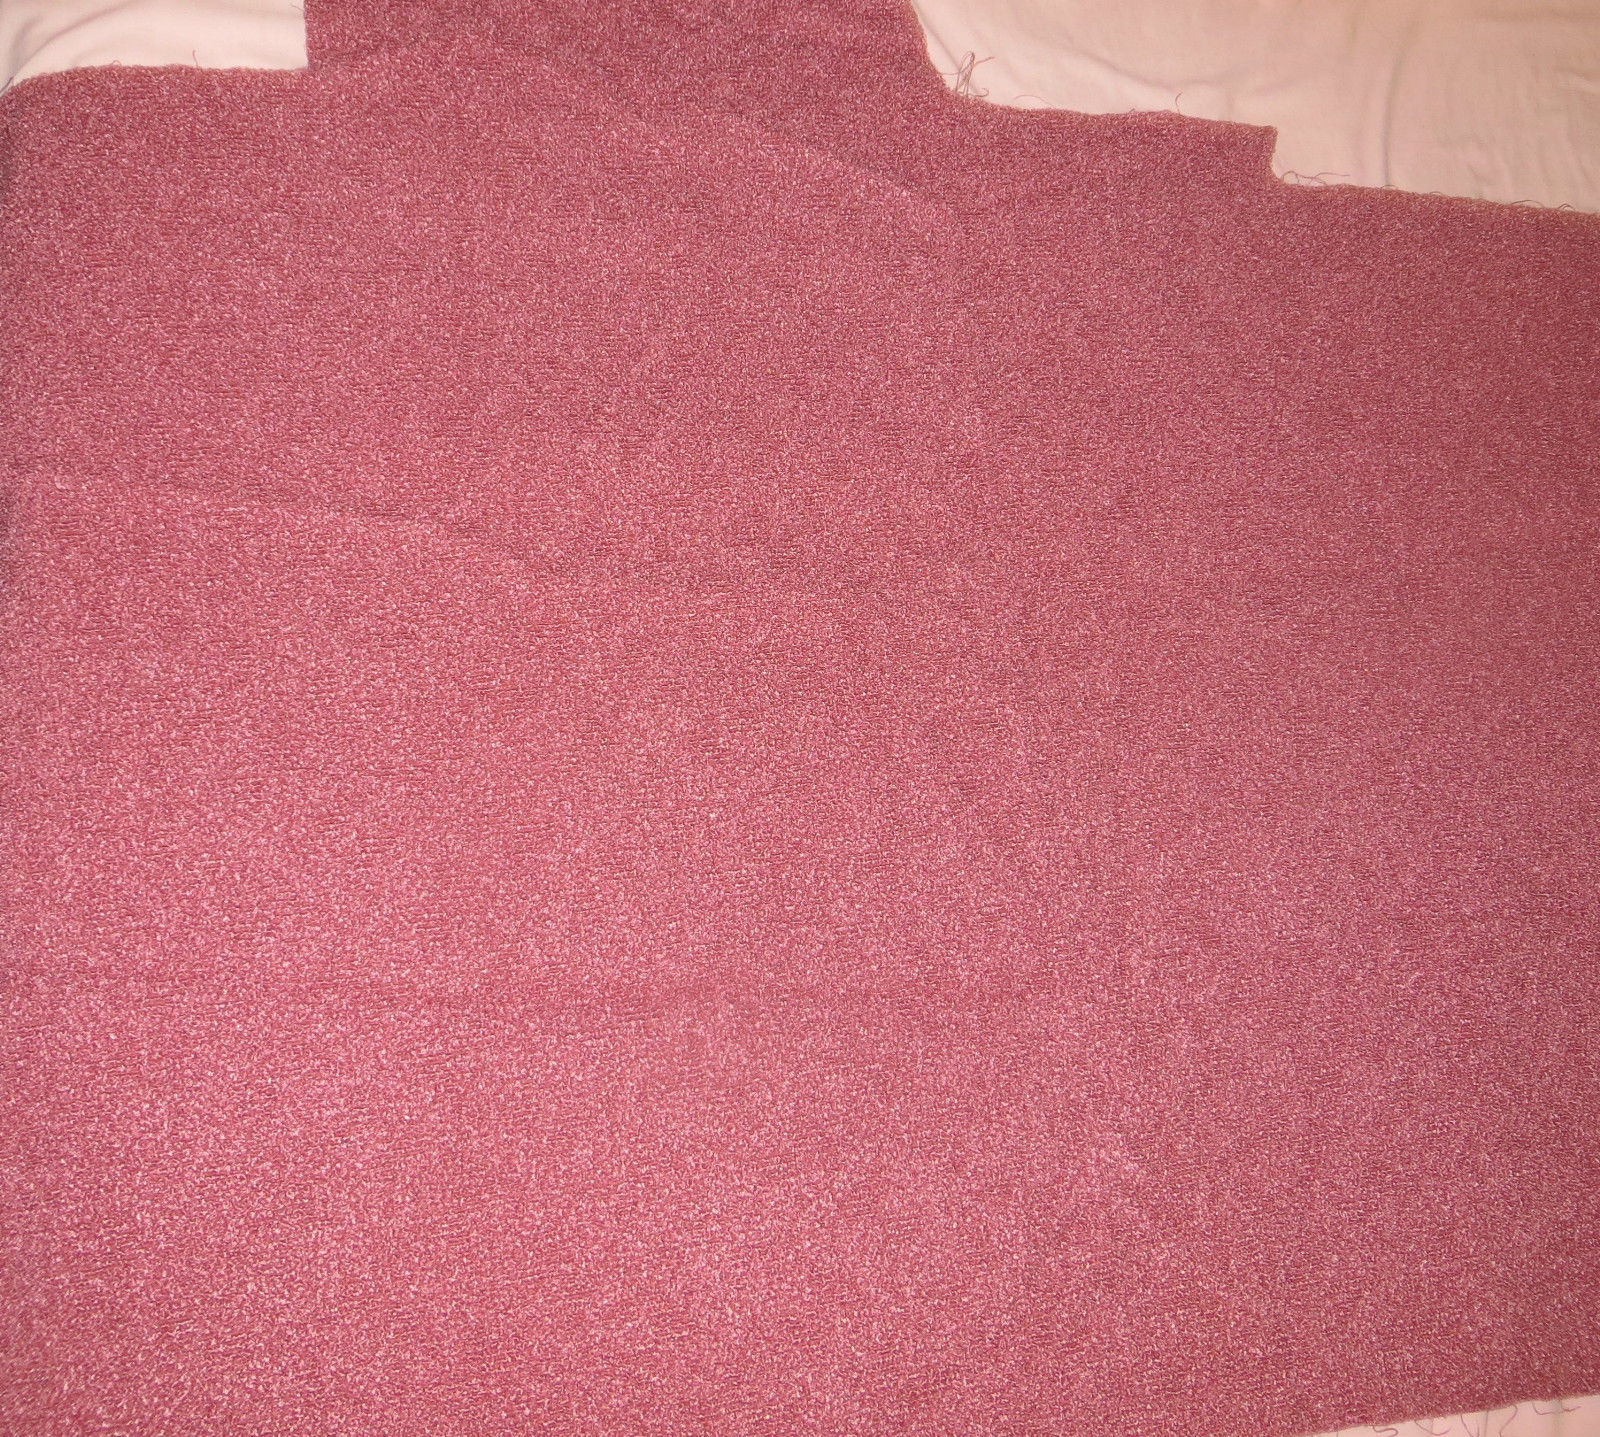 Vintage 1950s Frieze Upholstery Fabric Mauve And 50 Similar Items